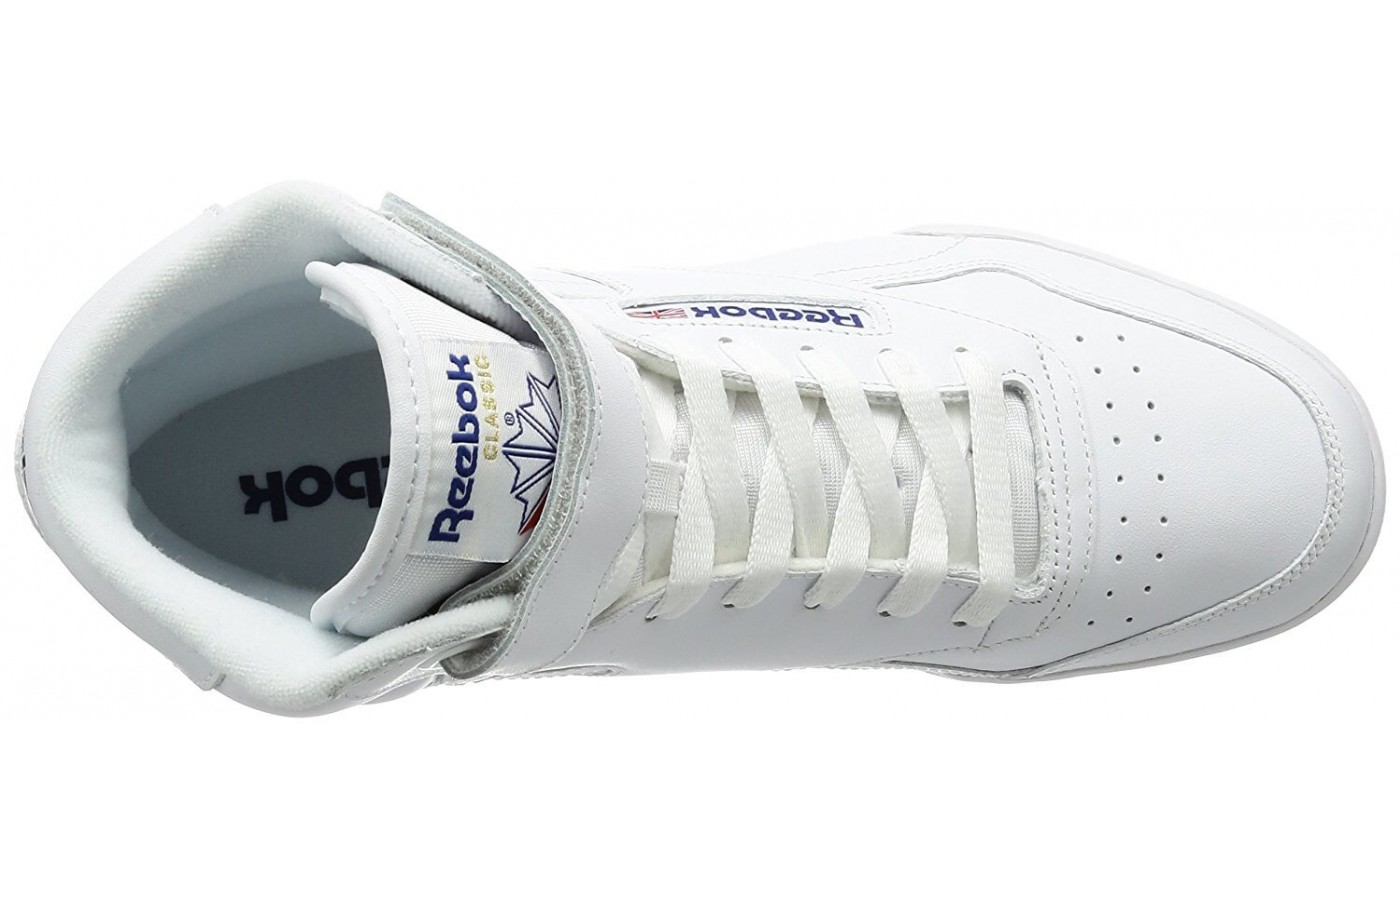 The Reebok Ex-O-Fit Hi features an ankle strap for support